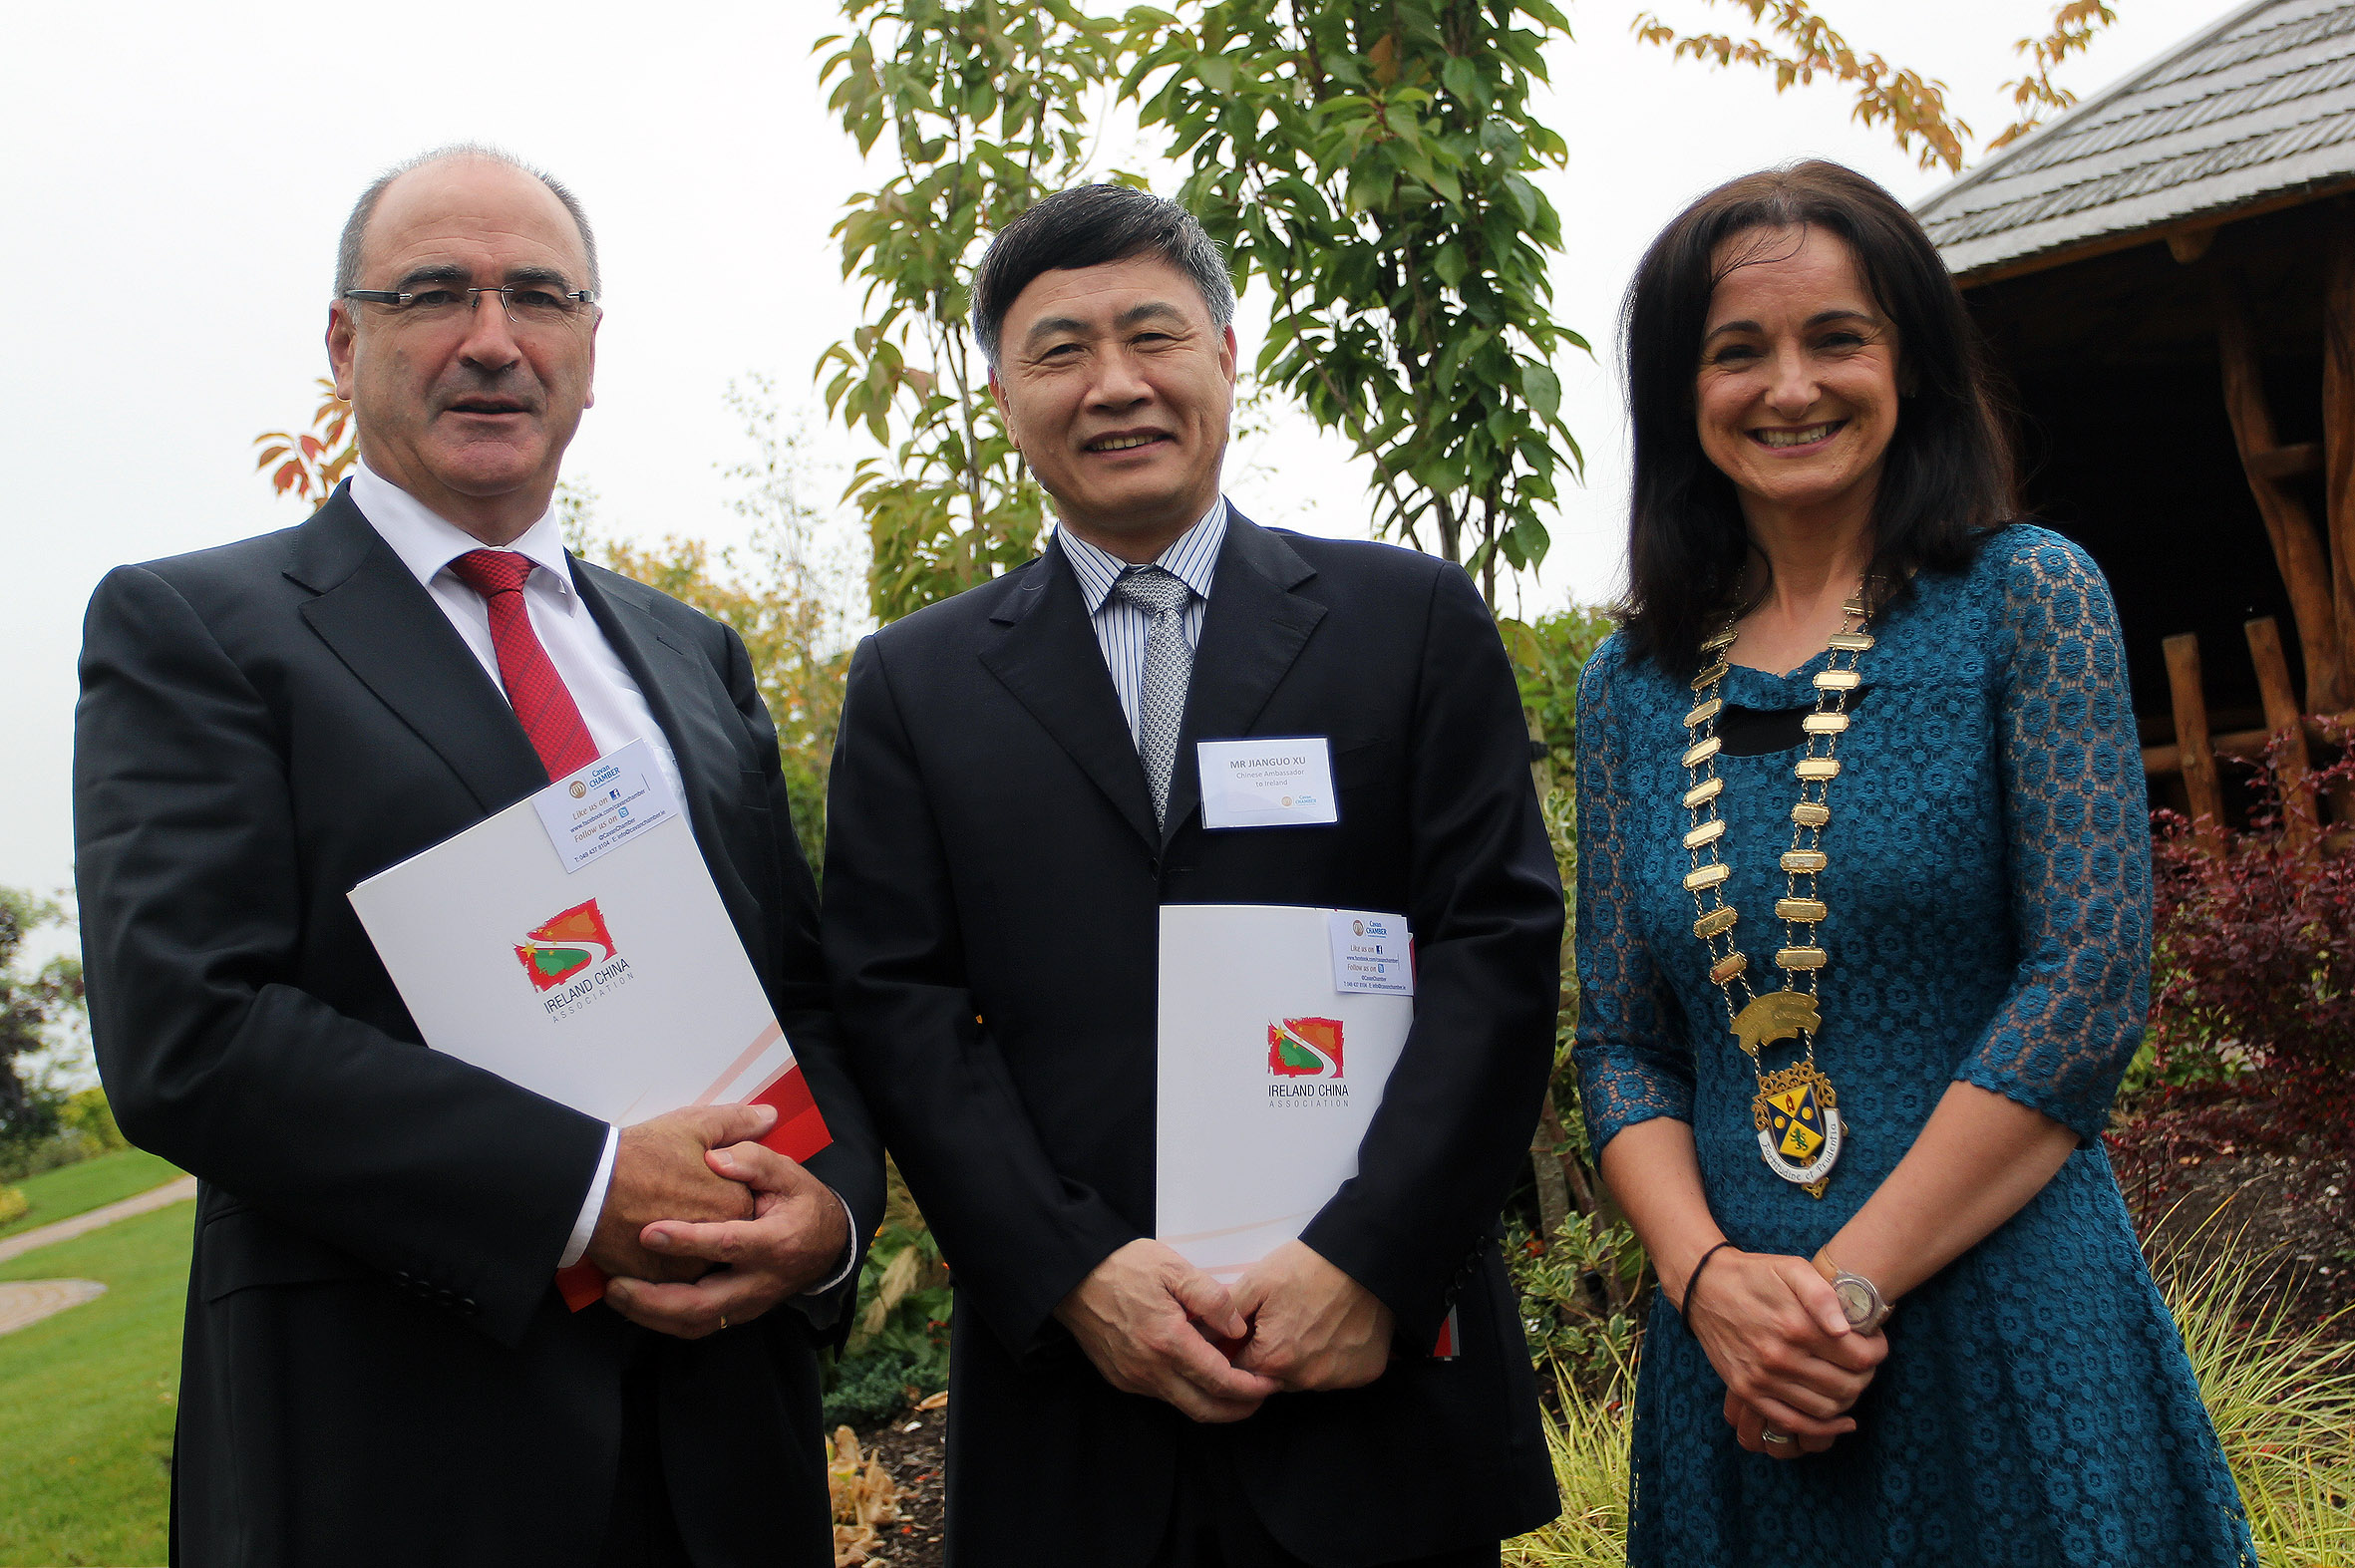 he Ambassador of China to Ireland, Mr. Jianguo Xu, pictured with Lakeland Dairies CEO Michael Hanley and Lyn Sharkey, President of Cavan Chamber of Commerce,  at the Ireland China Business Conference hosted by Cavan Chamber of Commerce.